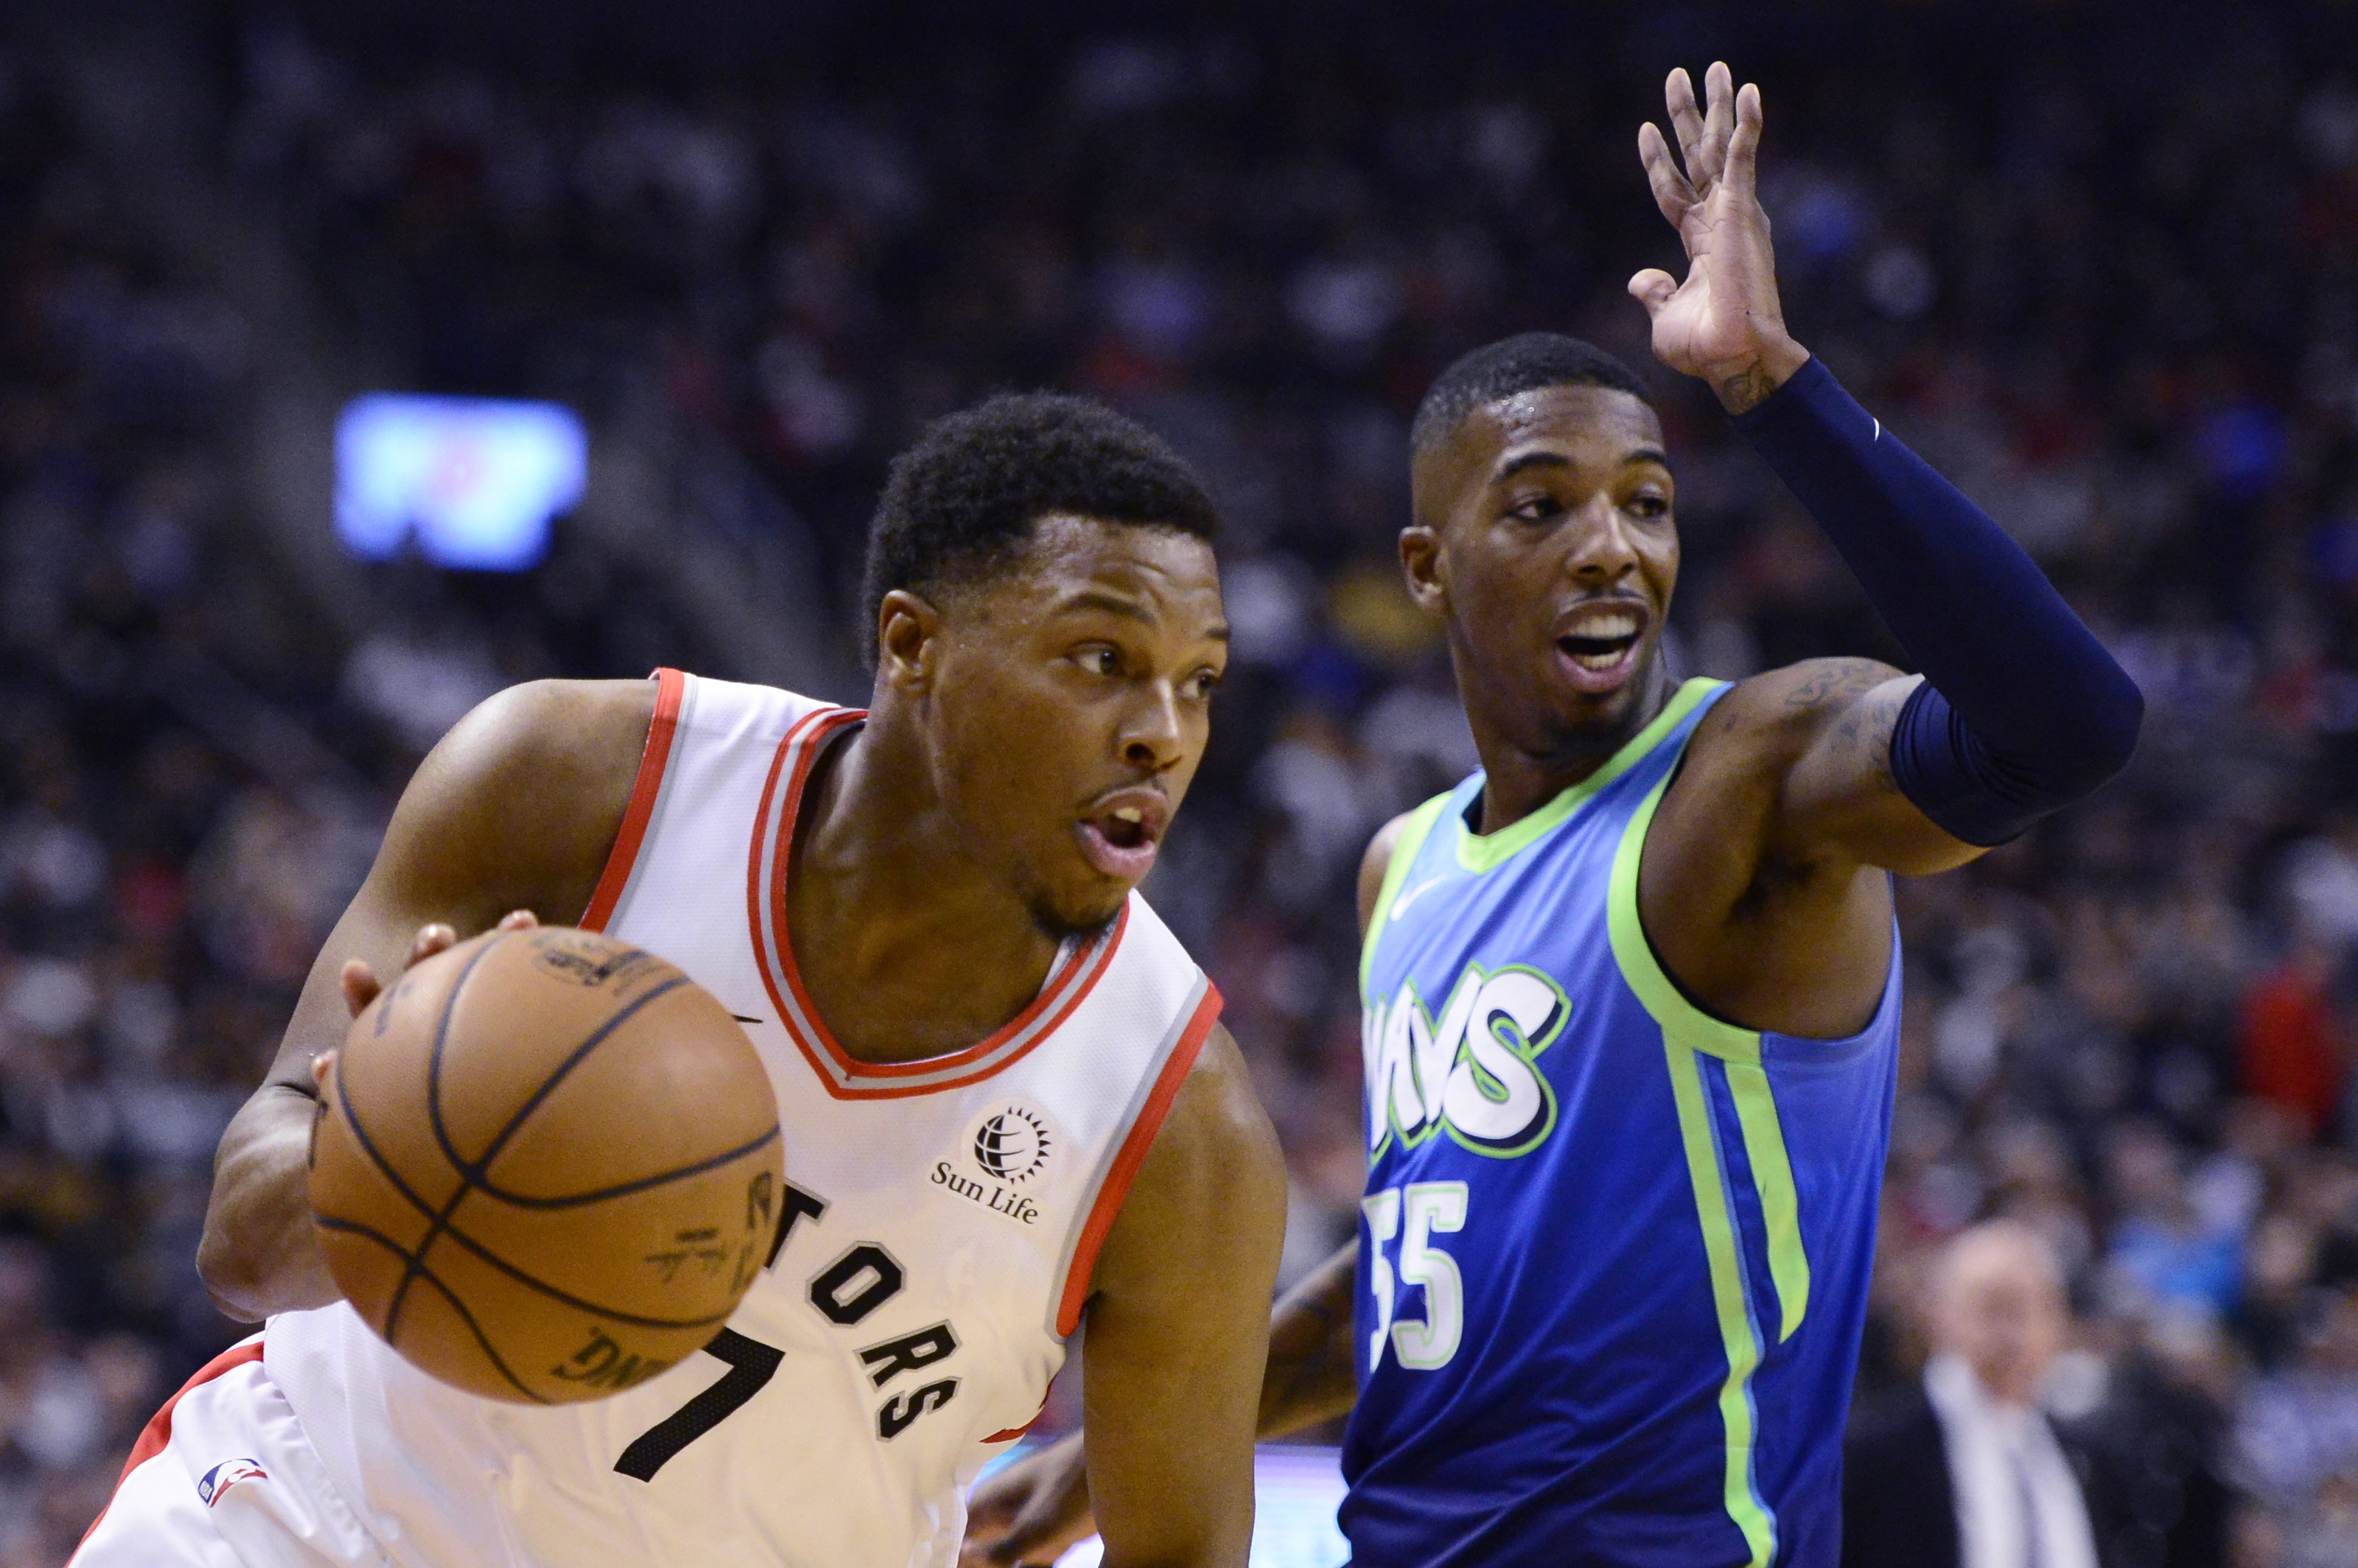 Mavs Blow 30 Point Lead As Weird Game With Raptors Puts A Sour Ending On Eastern Conference Gauntlet